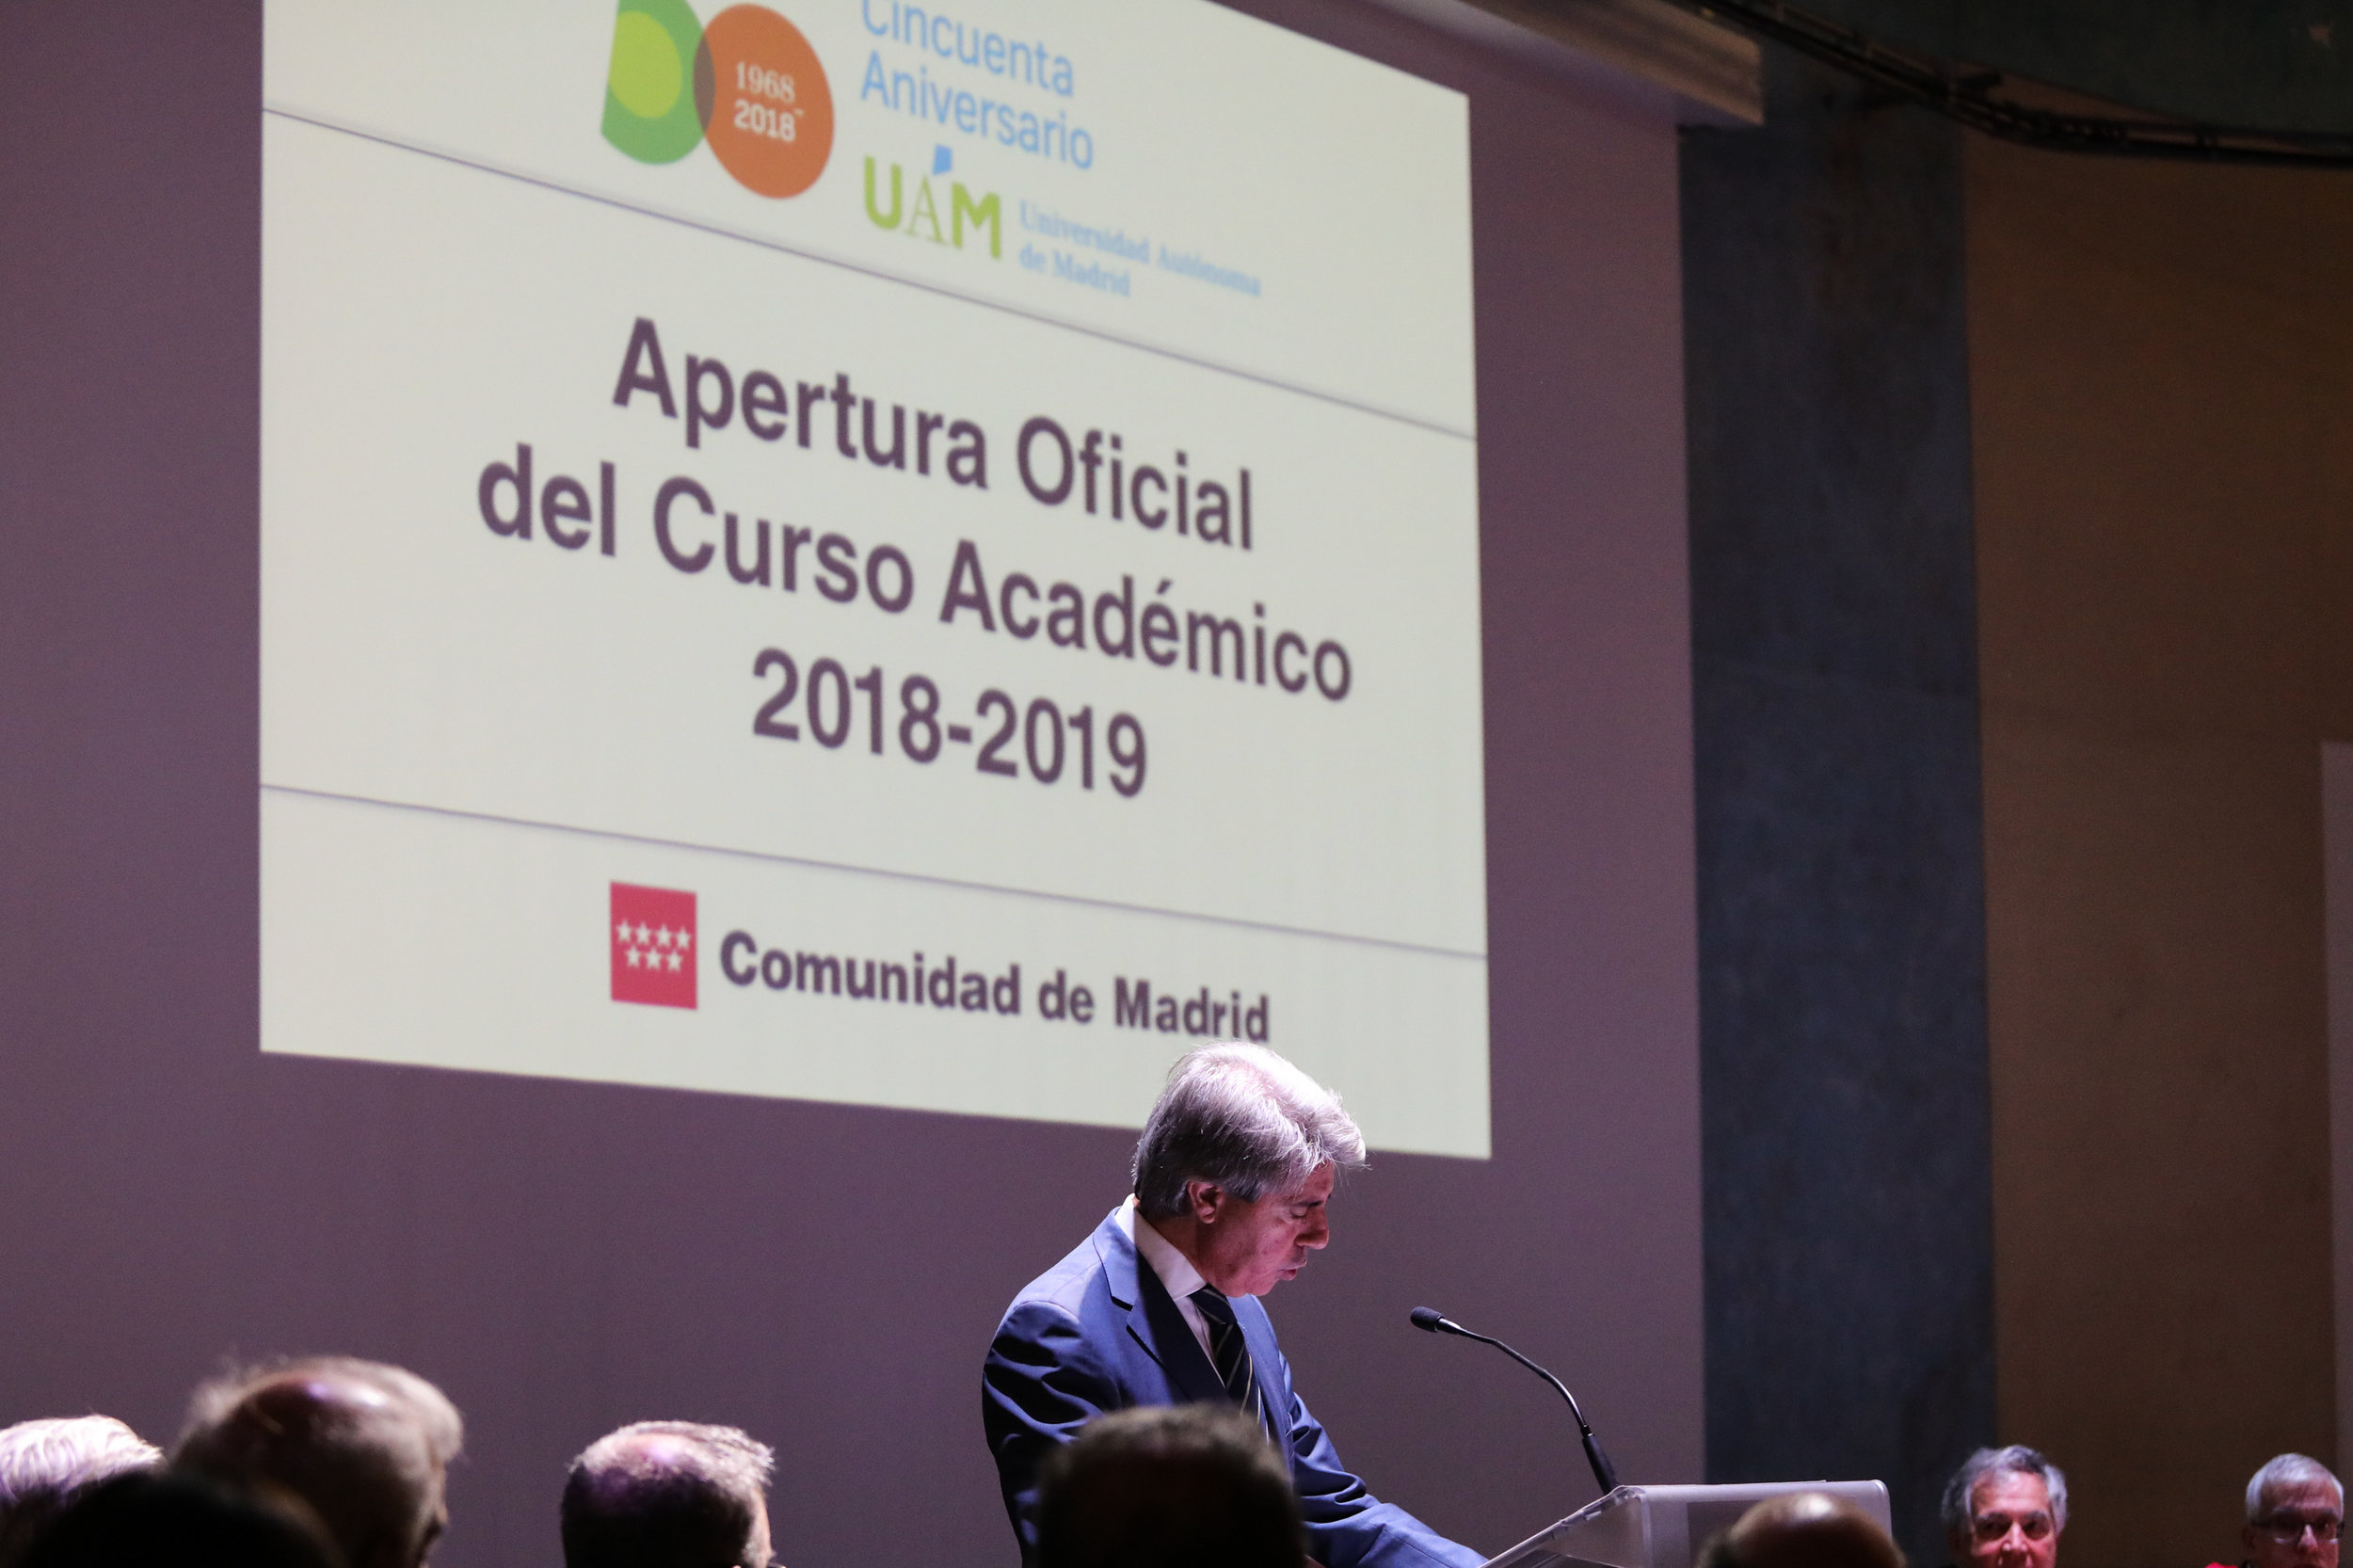 GARRIDO PRESIDES THE ACADEMIC ACT OF OPENING THE UNIVERSITY COURSE